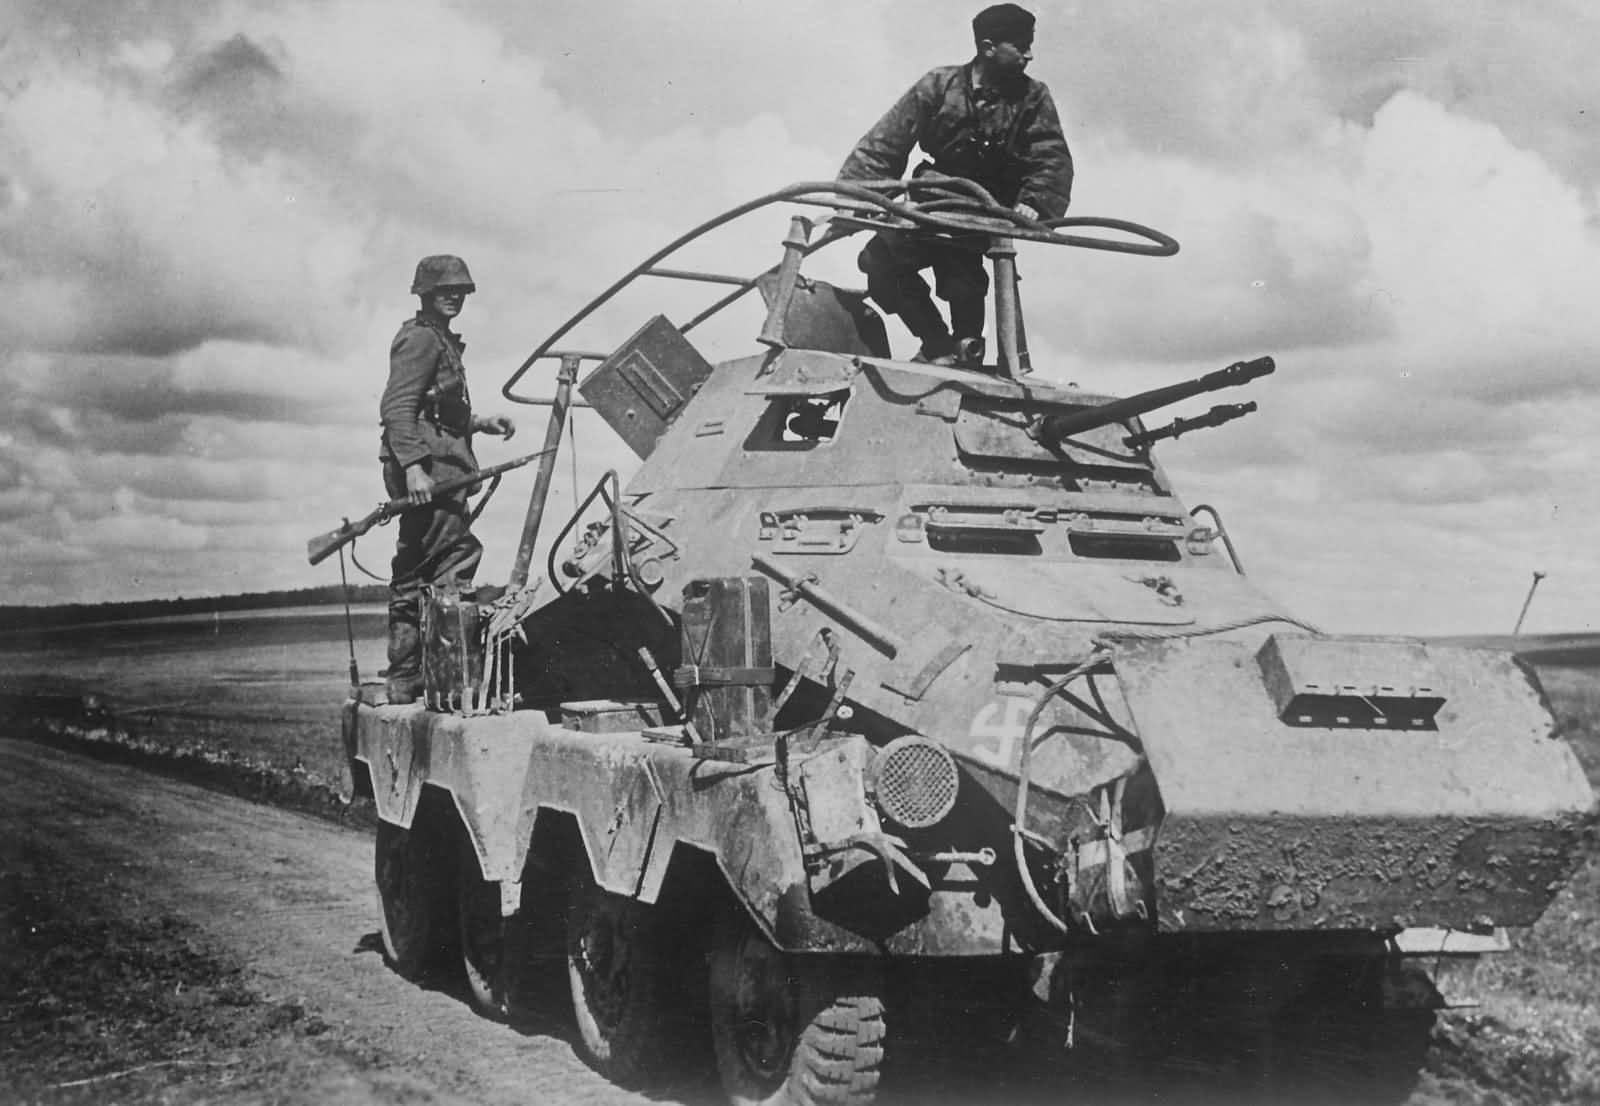 SdKfz 232 of the 5 SS Panzer Division Wiking Waffen SS